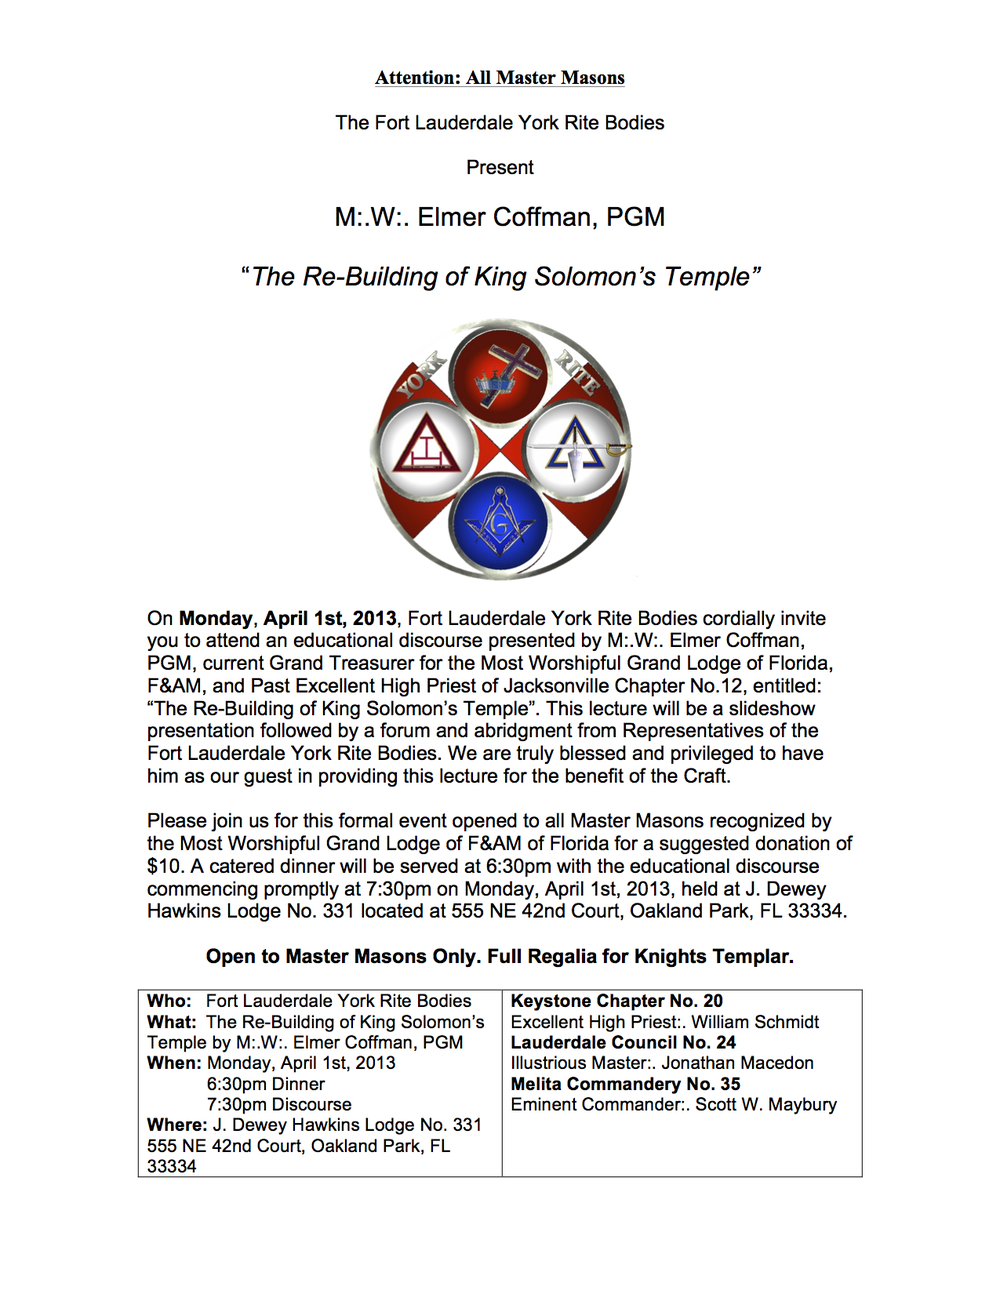 The PDF so you can print and share in your lodge